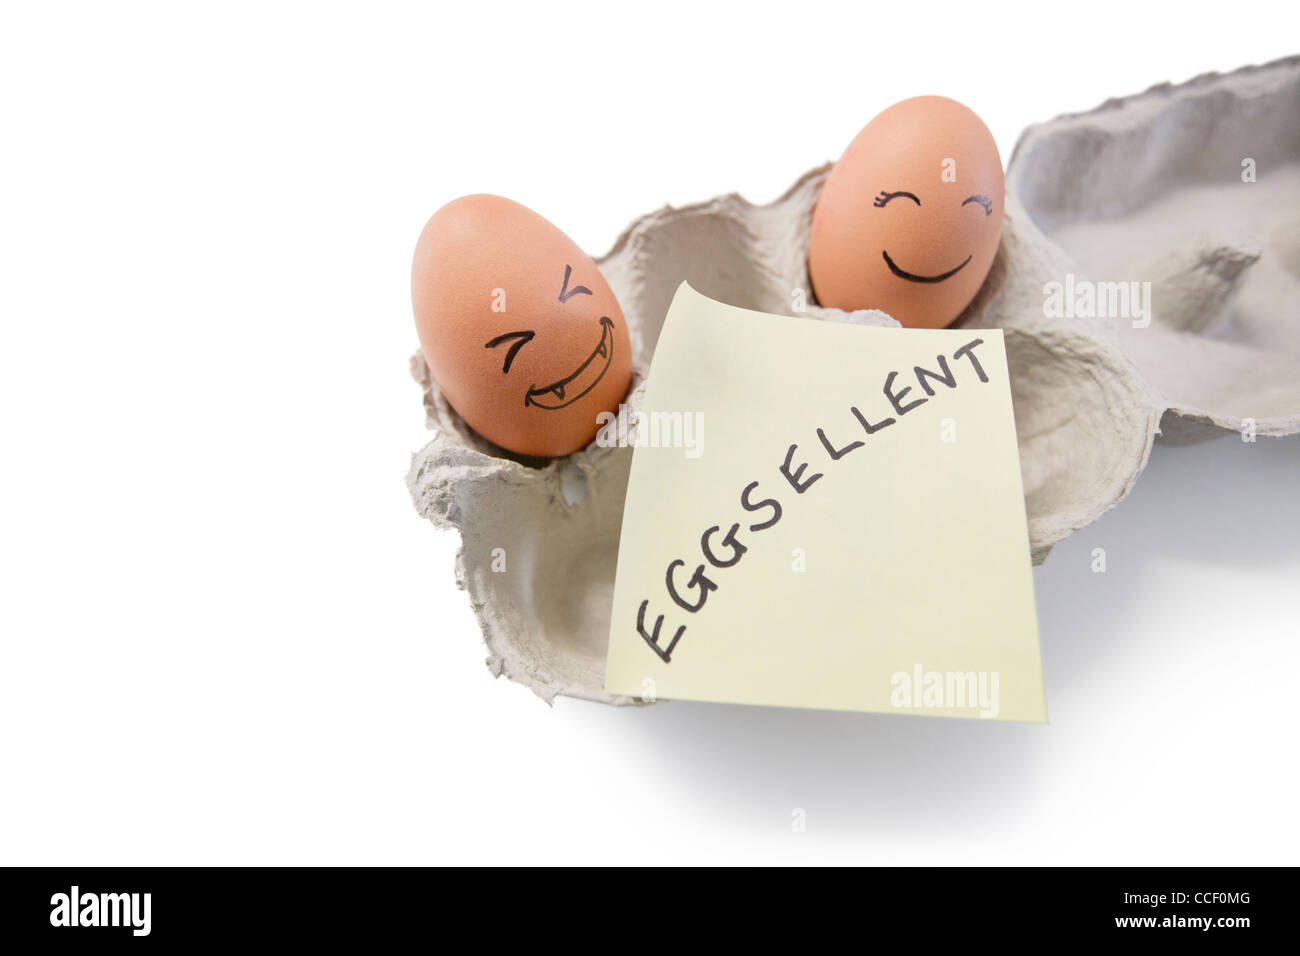 Smiley faces on eggs with 'eggsellent' written on notepaper - Stock Image